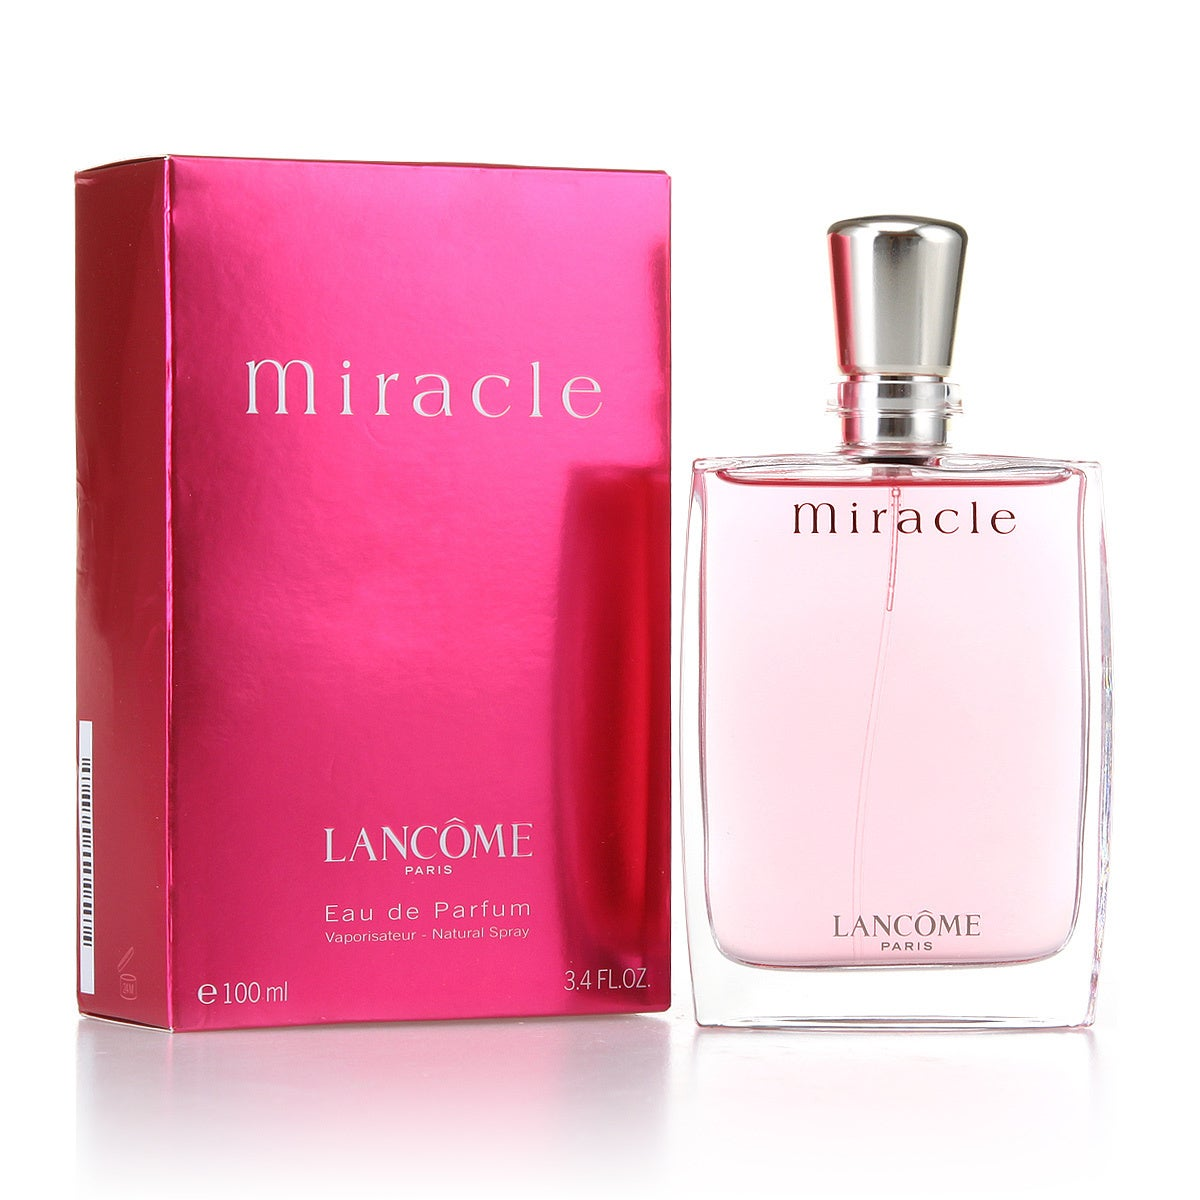 Lancome Miracle Women's 3.4 ounce Eau de Parfum Spray